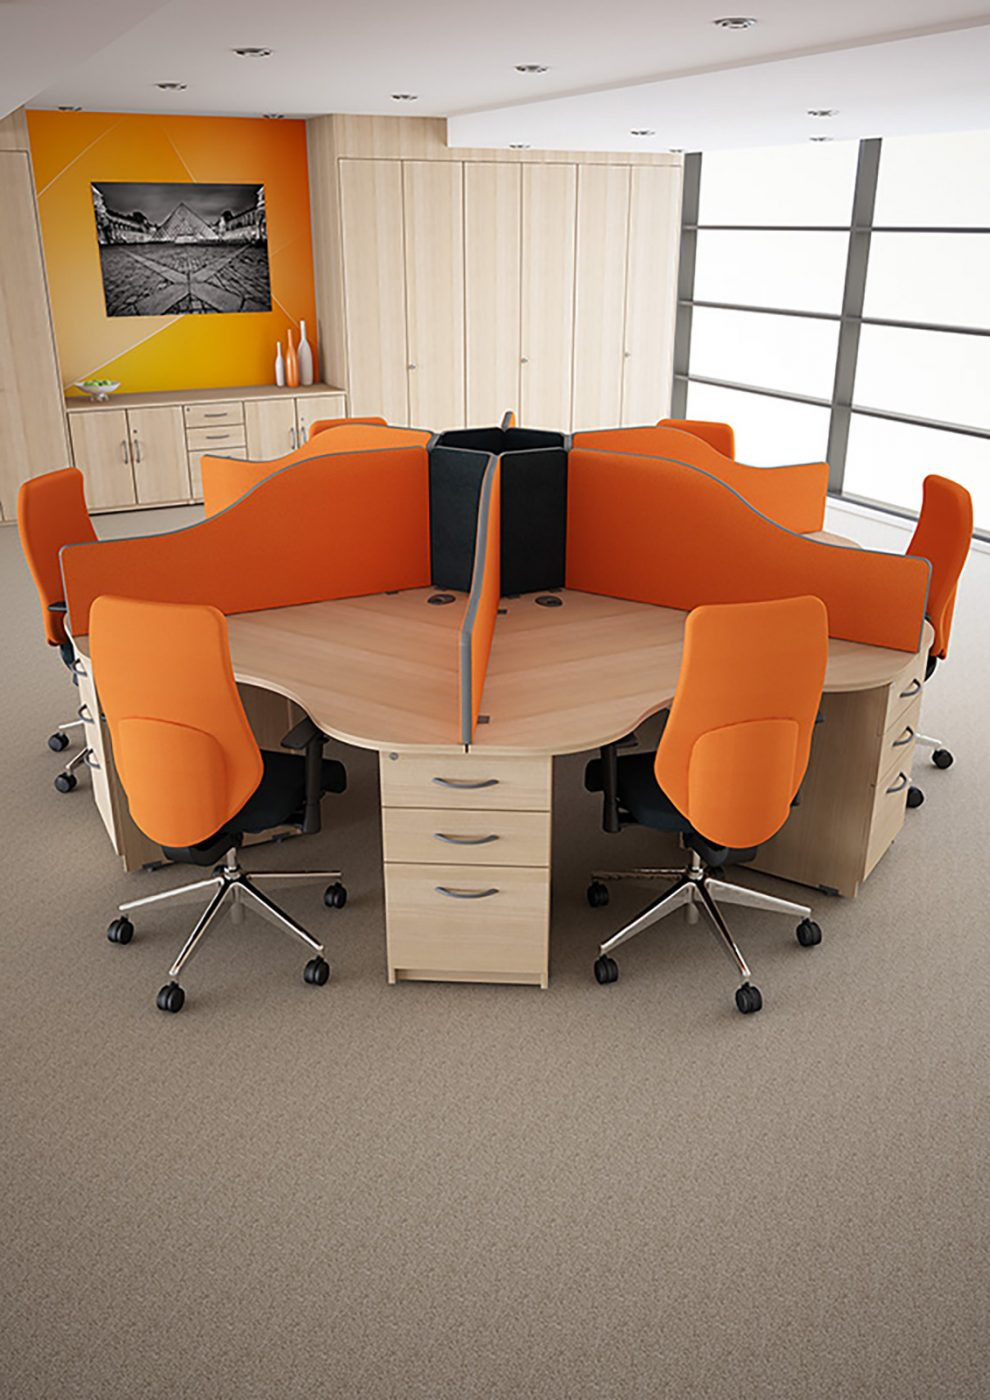 call centre, core unit, desktop screen, under desk ped, office furniture, call centre furniture